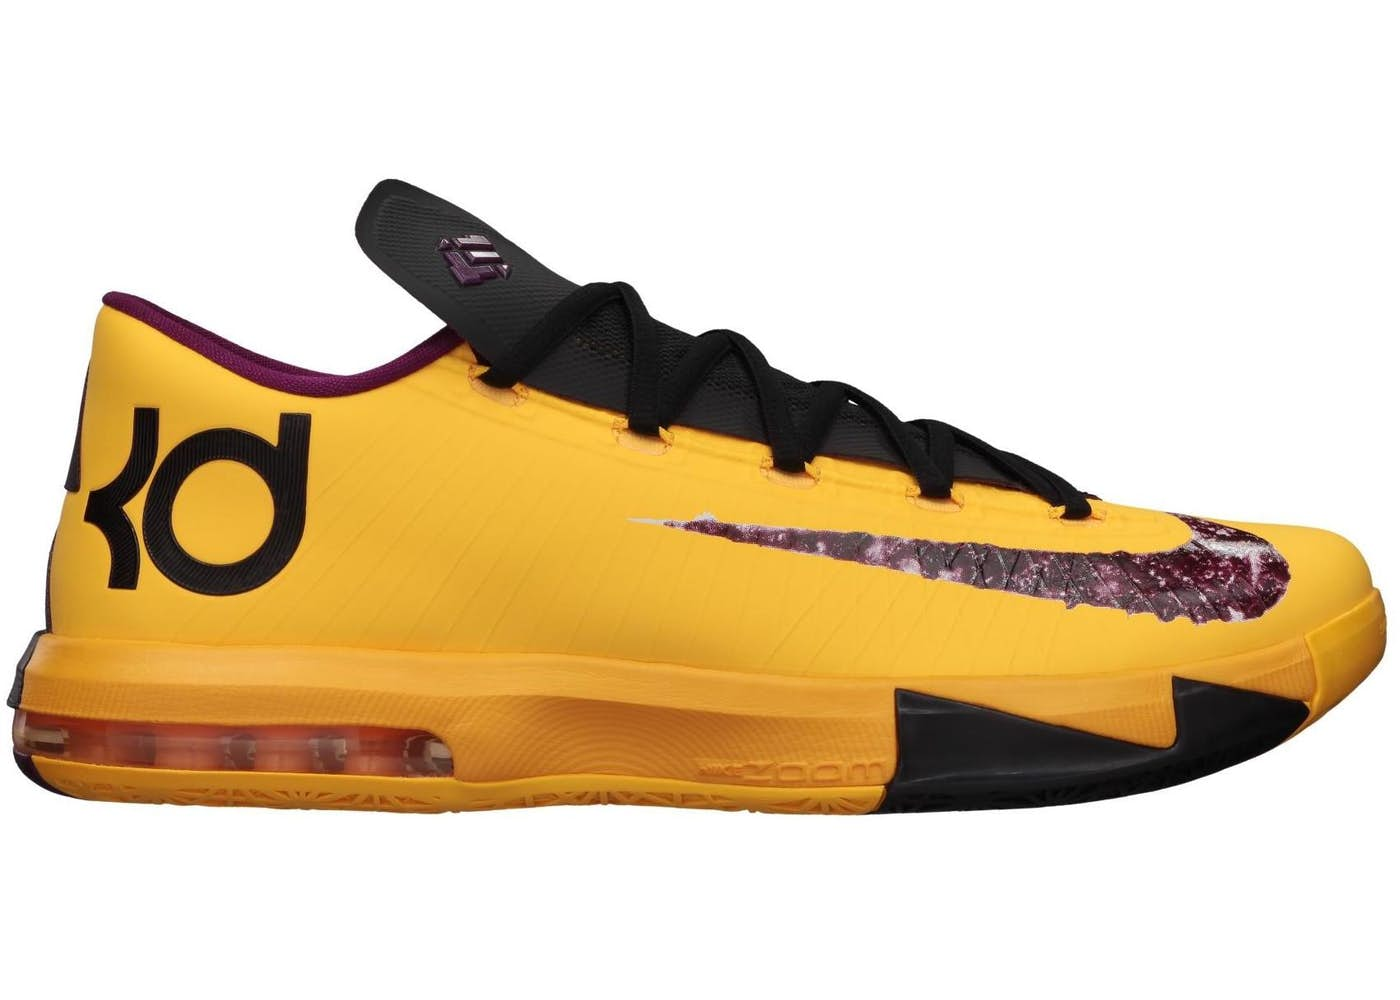 Kd Peanut Butter And Jelly Shoes For Sale